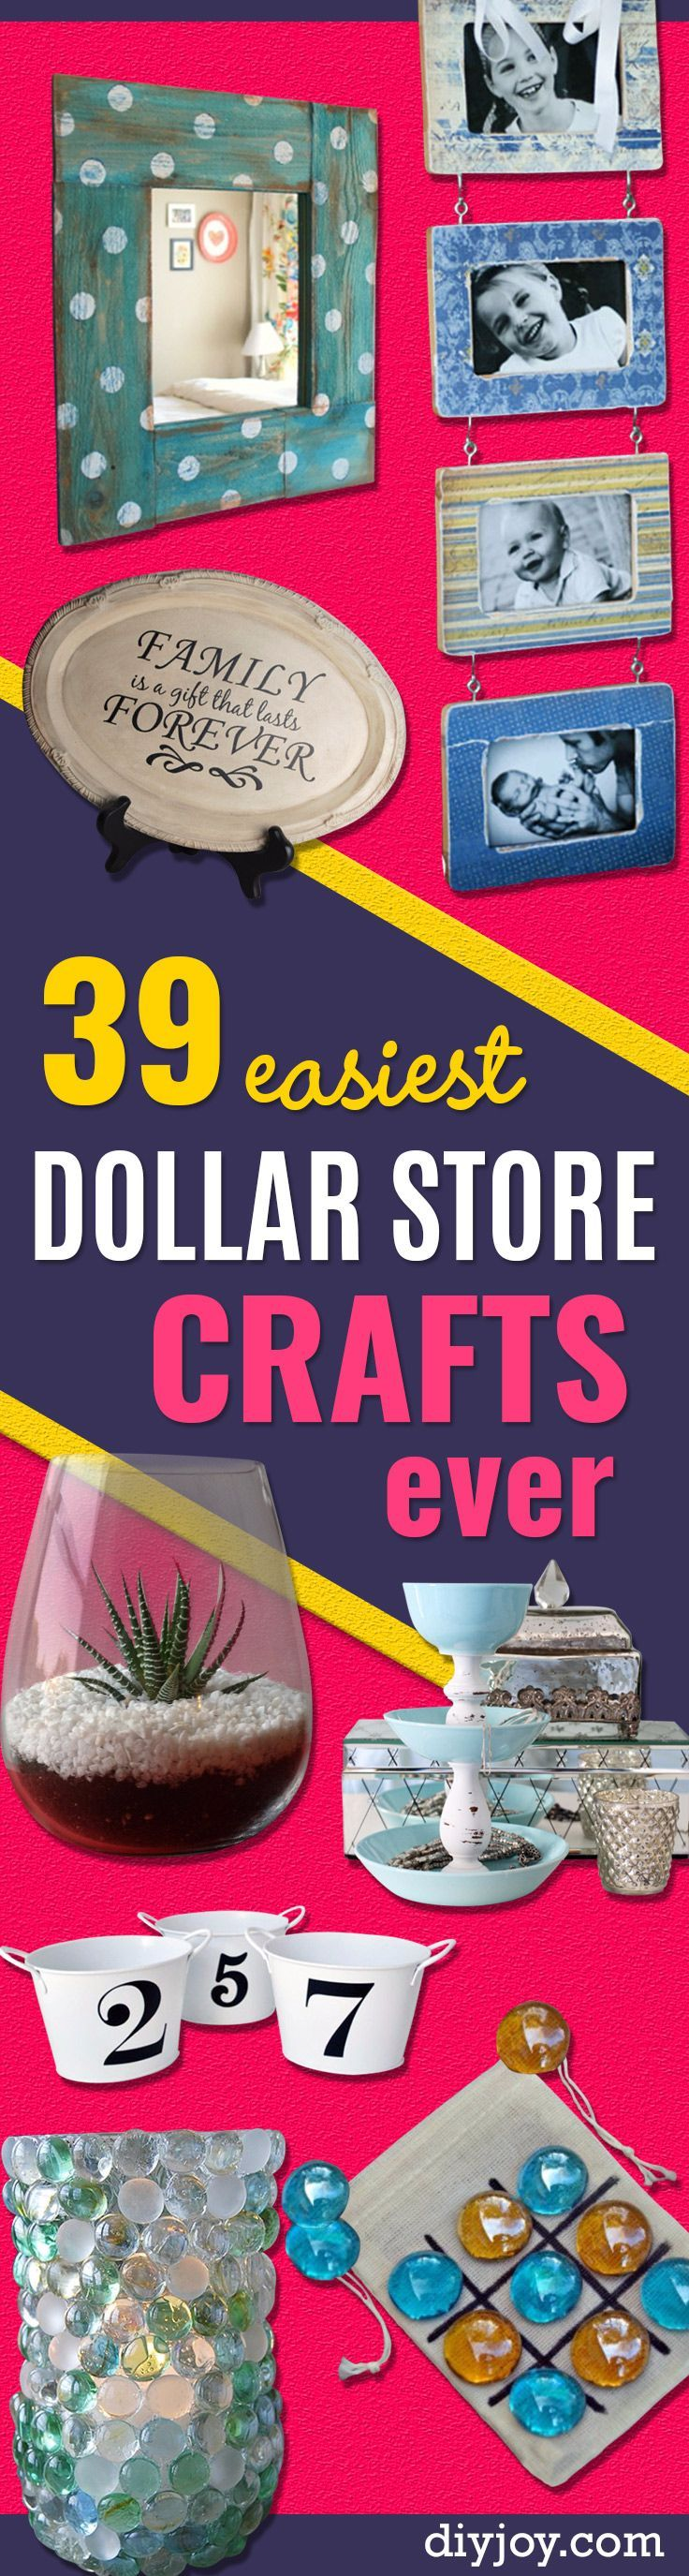 39 Easiest Dollar Store Crafts Ever #craftstomakeandsell